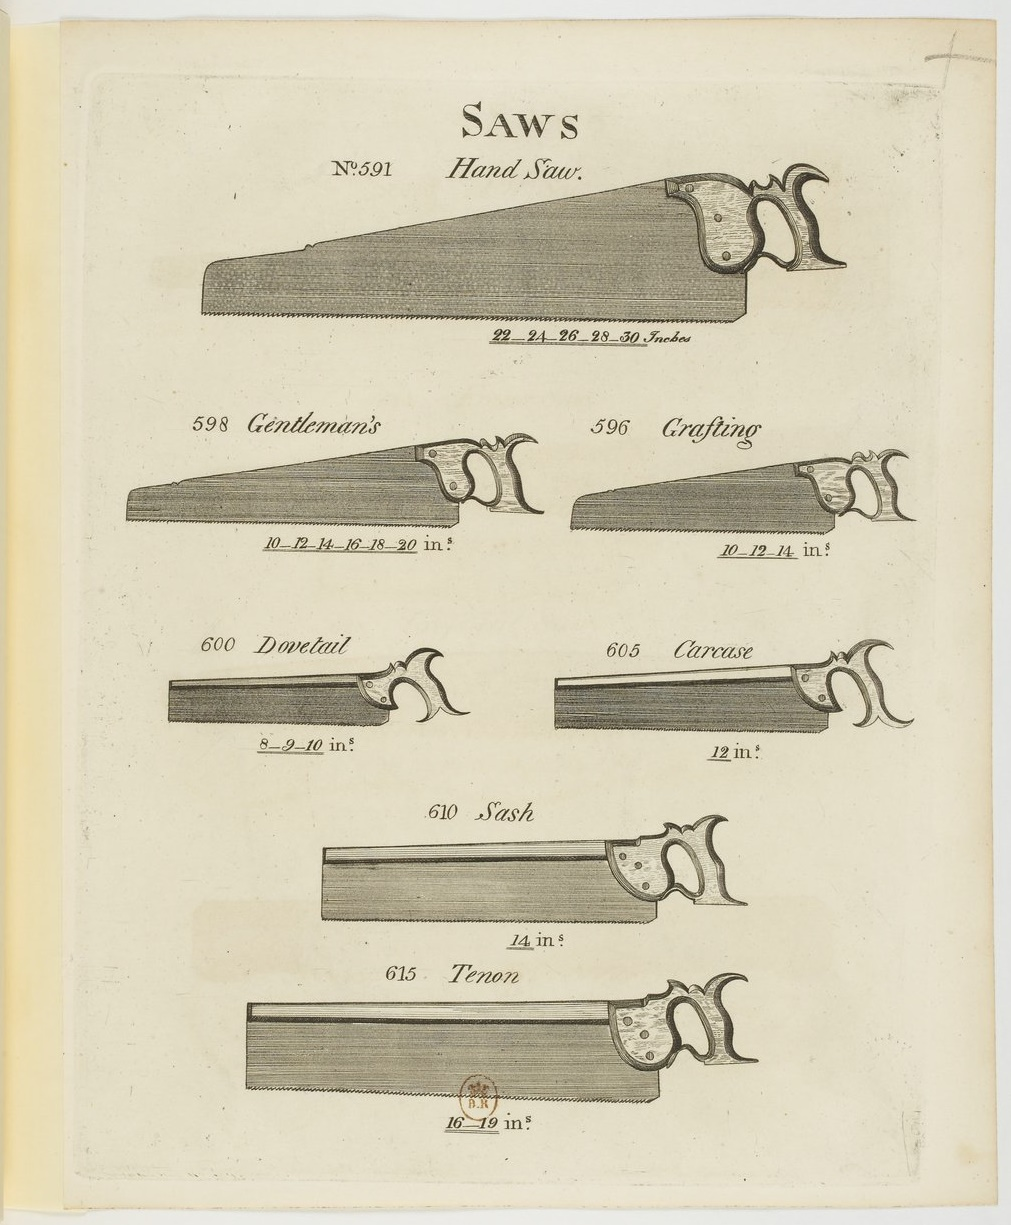 Smith's key saws